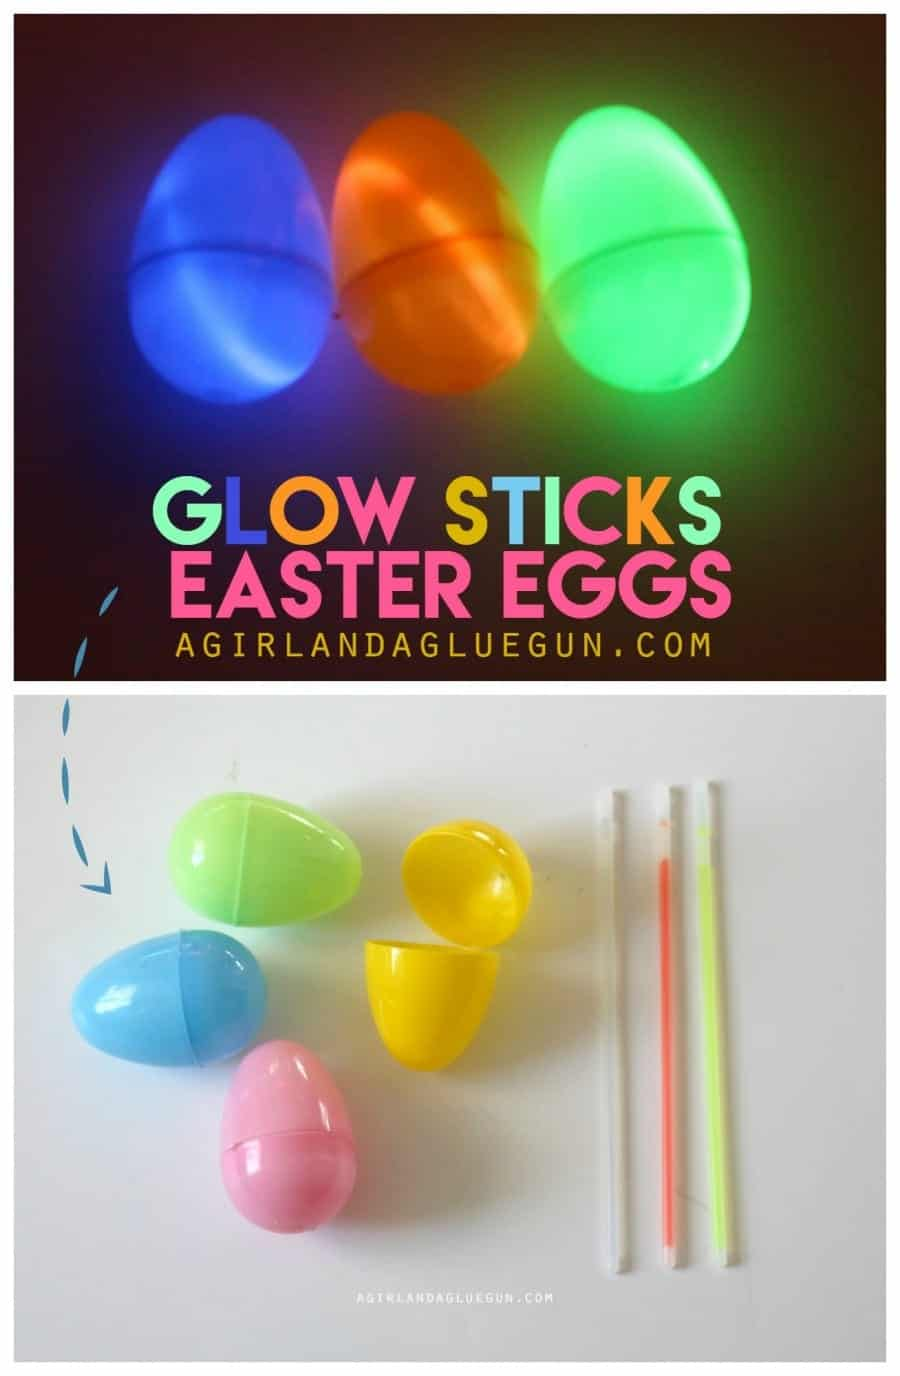 glow sticks easter eggs for a fun glow in the dark easter egg hunt